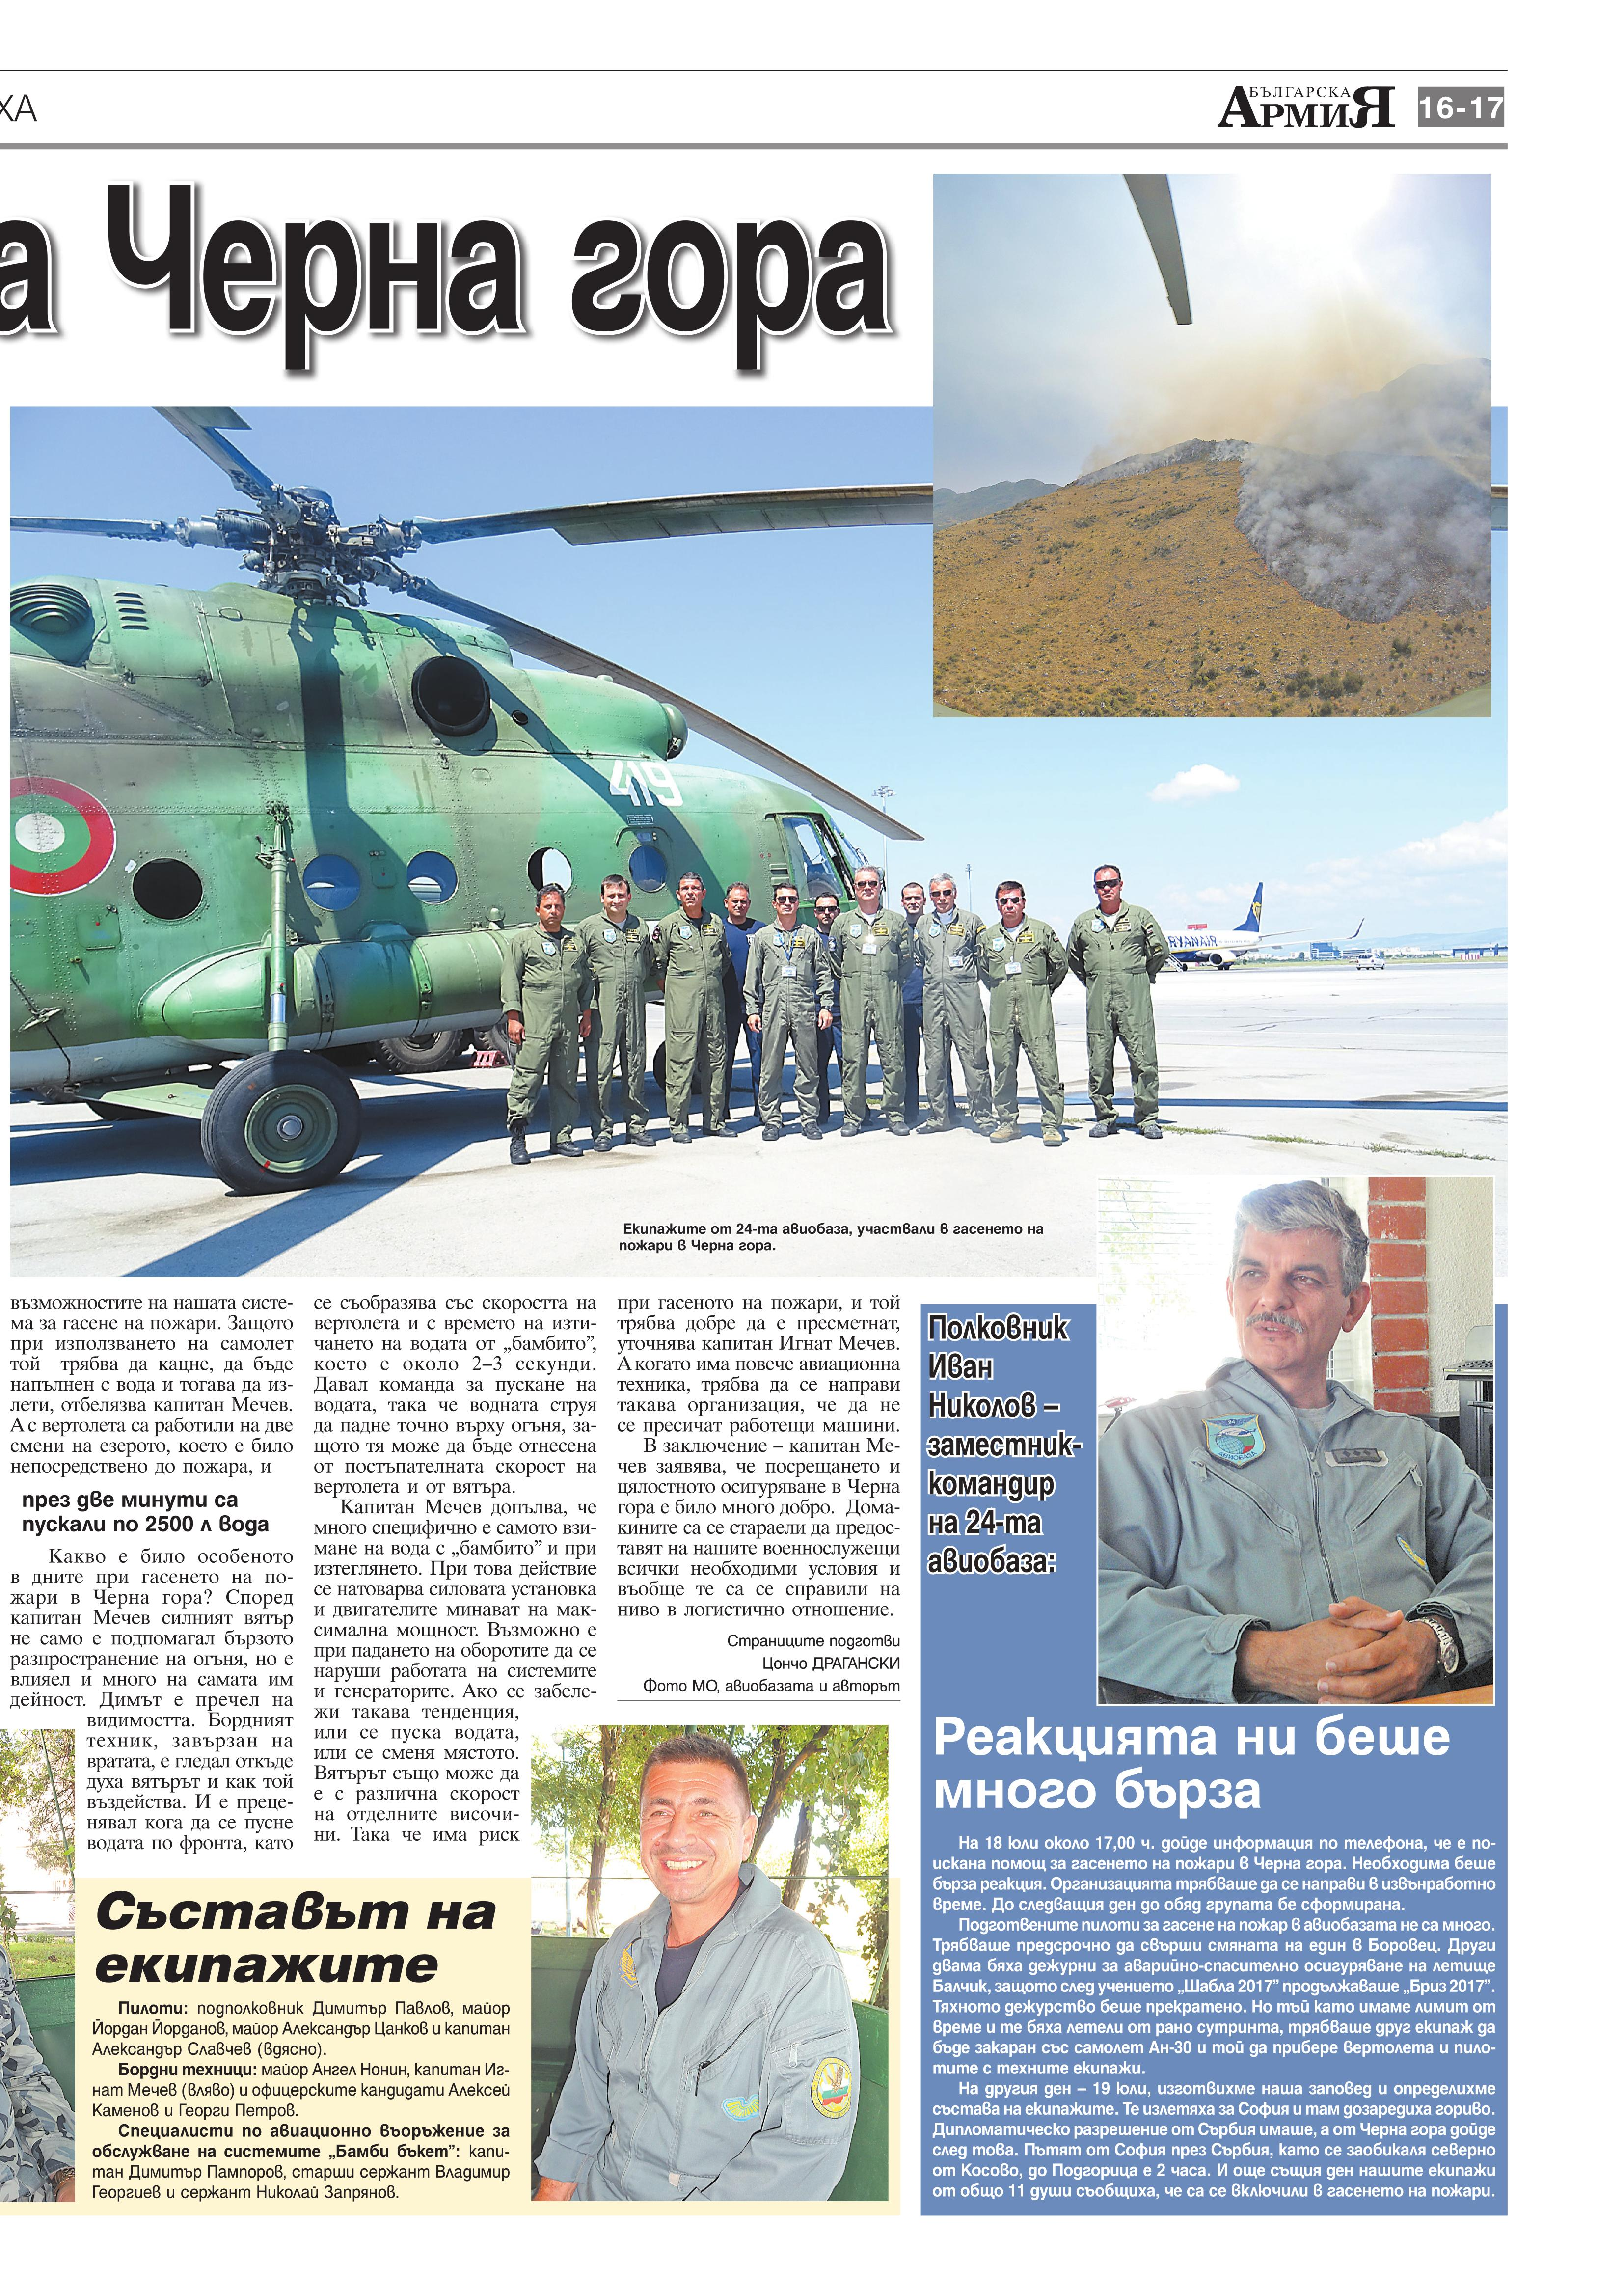 https://www.armymedia.bg/wp-content/uploads/2015/06/17.page1_-27.jpg